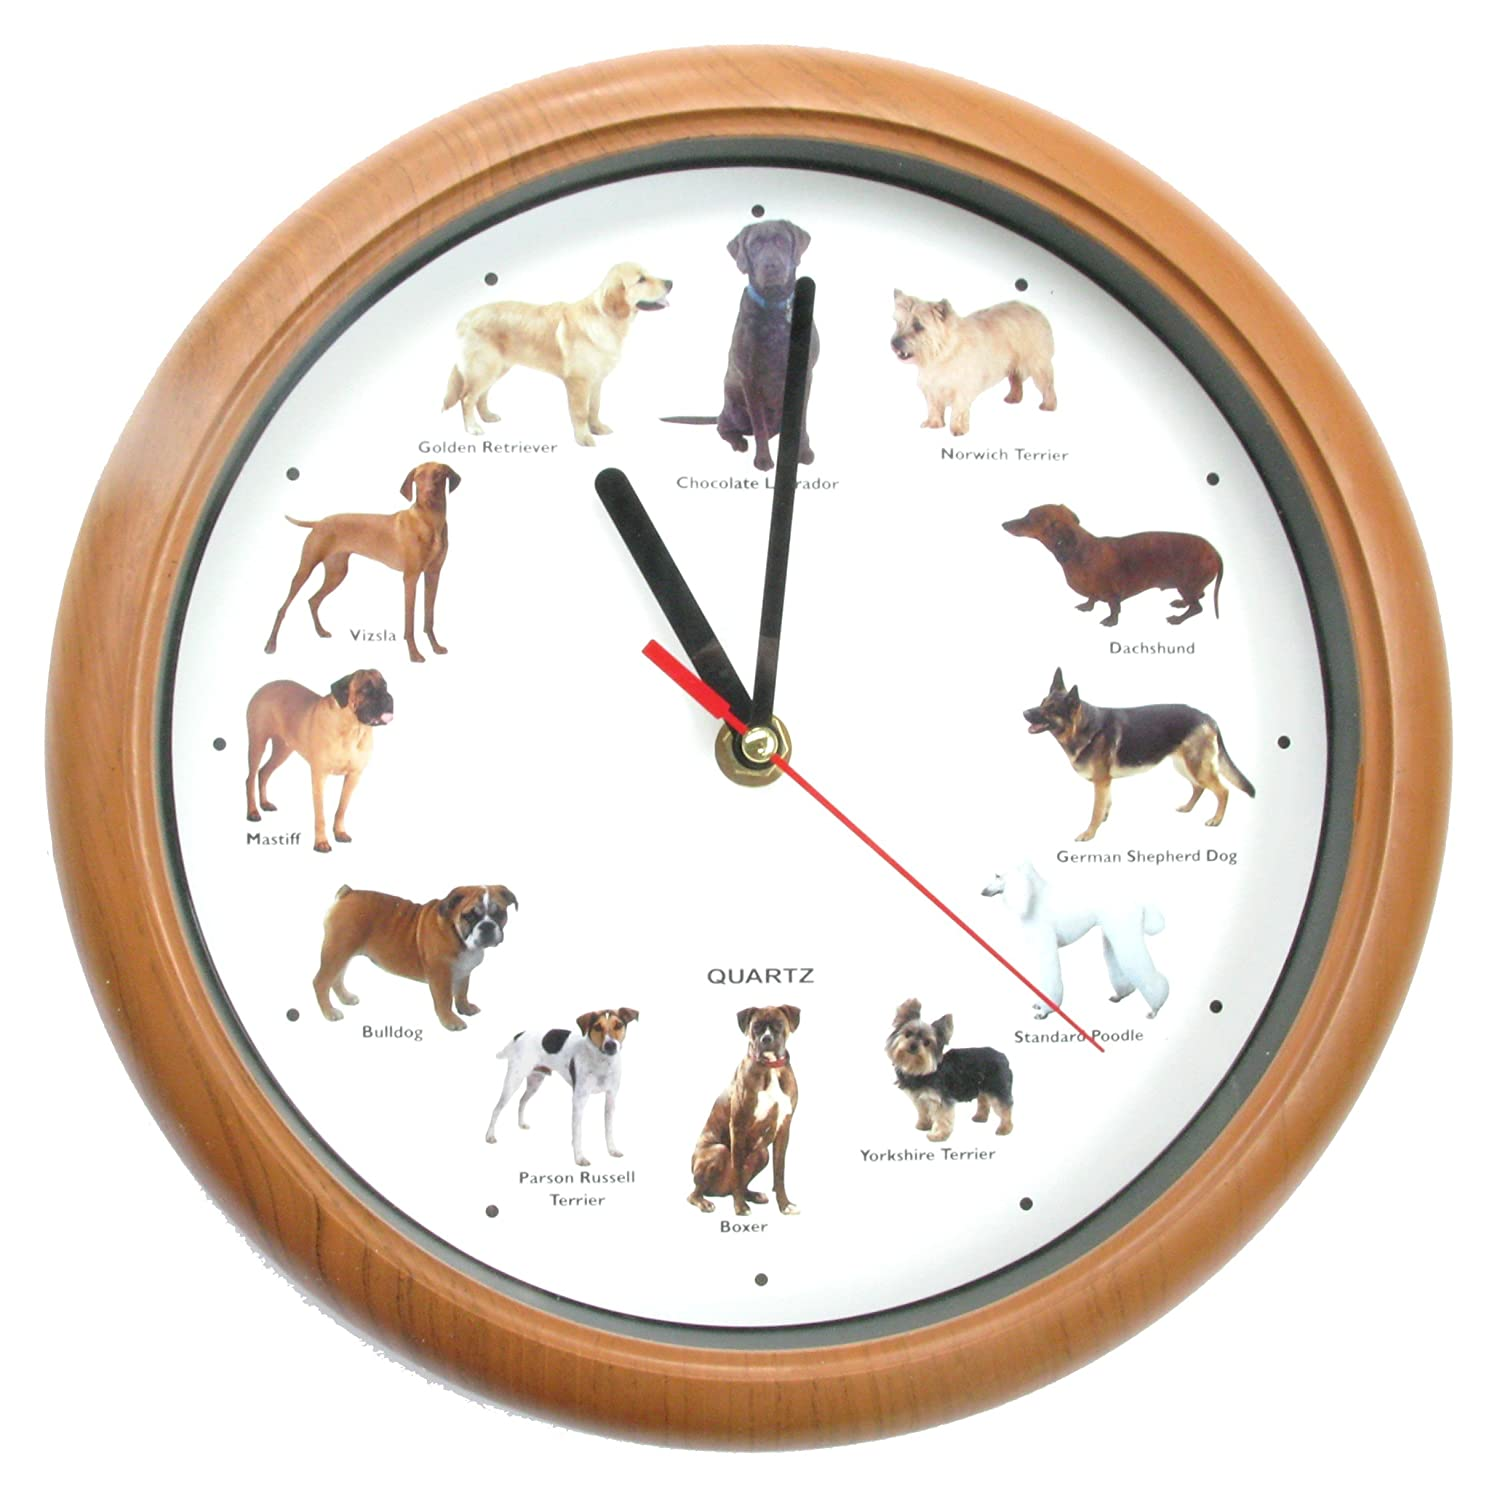 Dog Wall Clock - Quartz Barking Dog Wall Clock - Optional Barking Chime! - Labrador Poodle Terrier Boxer Bulldog Golden Retreiver by The Friendly Trading Co